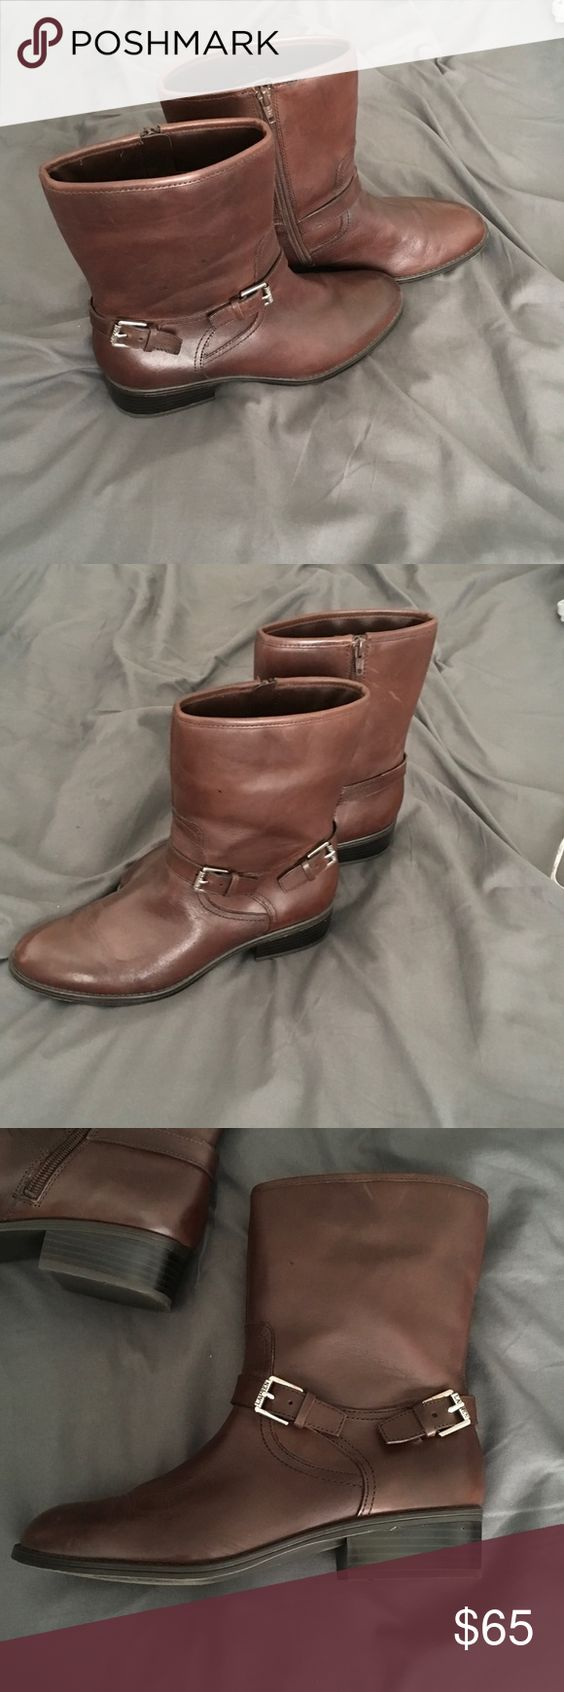 Ralph Lauren boots These Ralph Lauren ankle boots are brown leather. They have a side zipper to get into and fashionable buckles for style. They are a size 8.5 Lauren Ralph Lauren Shoes Ankle Boots & Booties